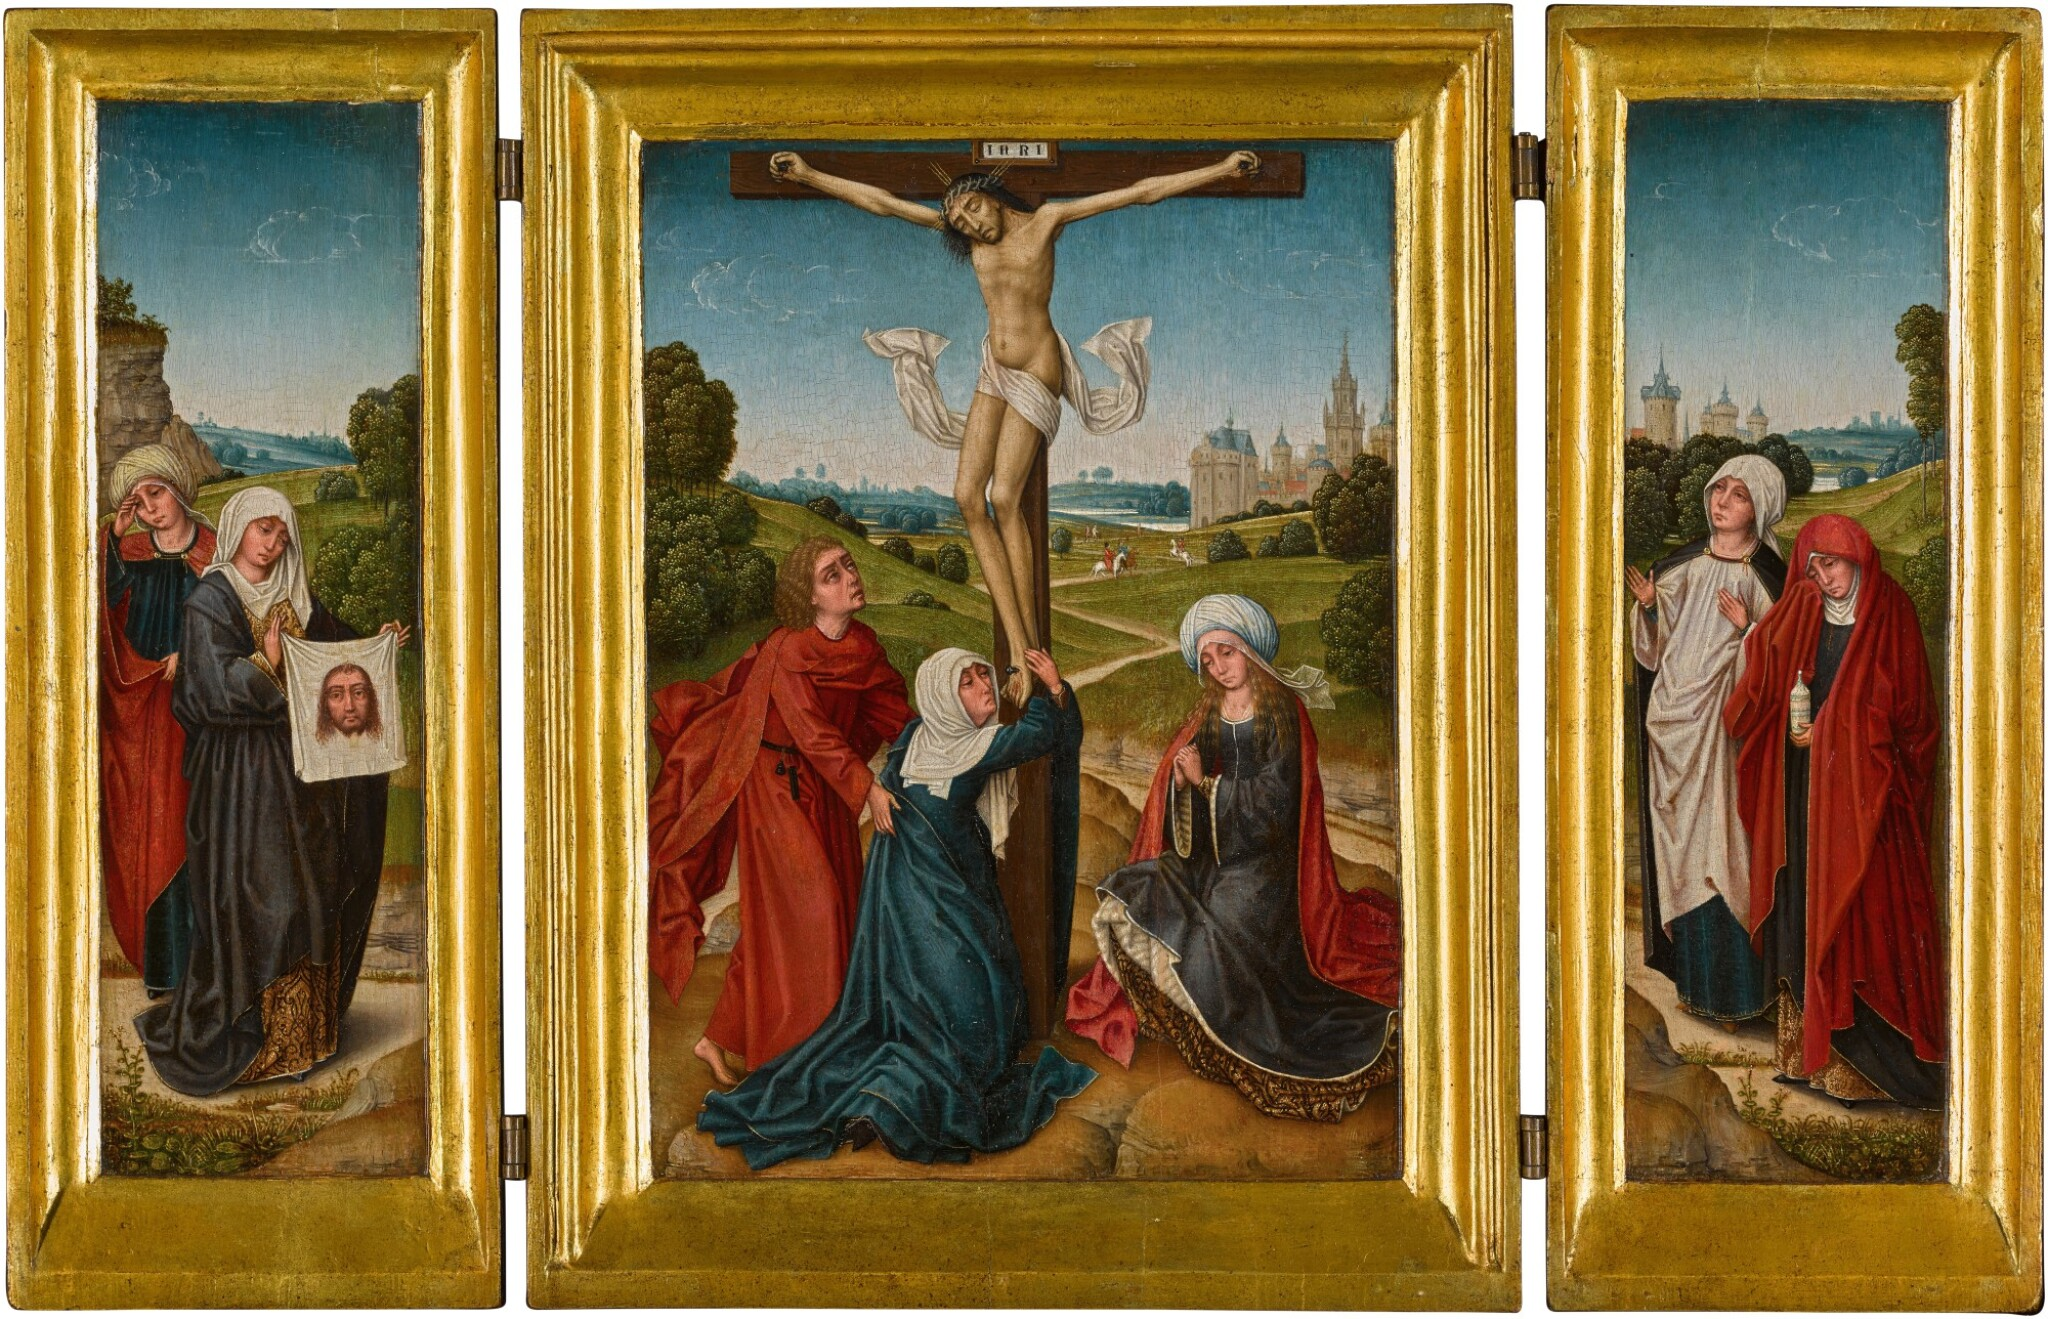 View full screen - View 1 of Lot 1. A portable triptych: The Crucifixion with Saints John, Mary and a companion (central panel); Saint Veronica and a companion (left wing); Saint Mary Magdalene and a companion (right wing)   《小型三聯作:十字架苦像與聖約翰、瑪利亞及同伴(中央畫板);聖韋羅尼加與同伴(左翼);聖抹大拉的馬利亞與同伴(右翼)》.